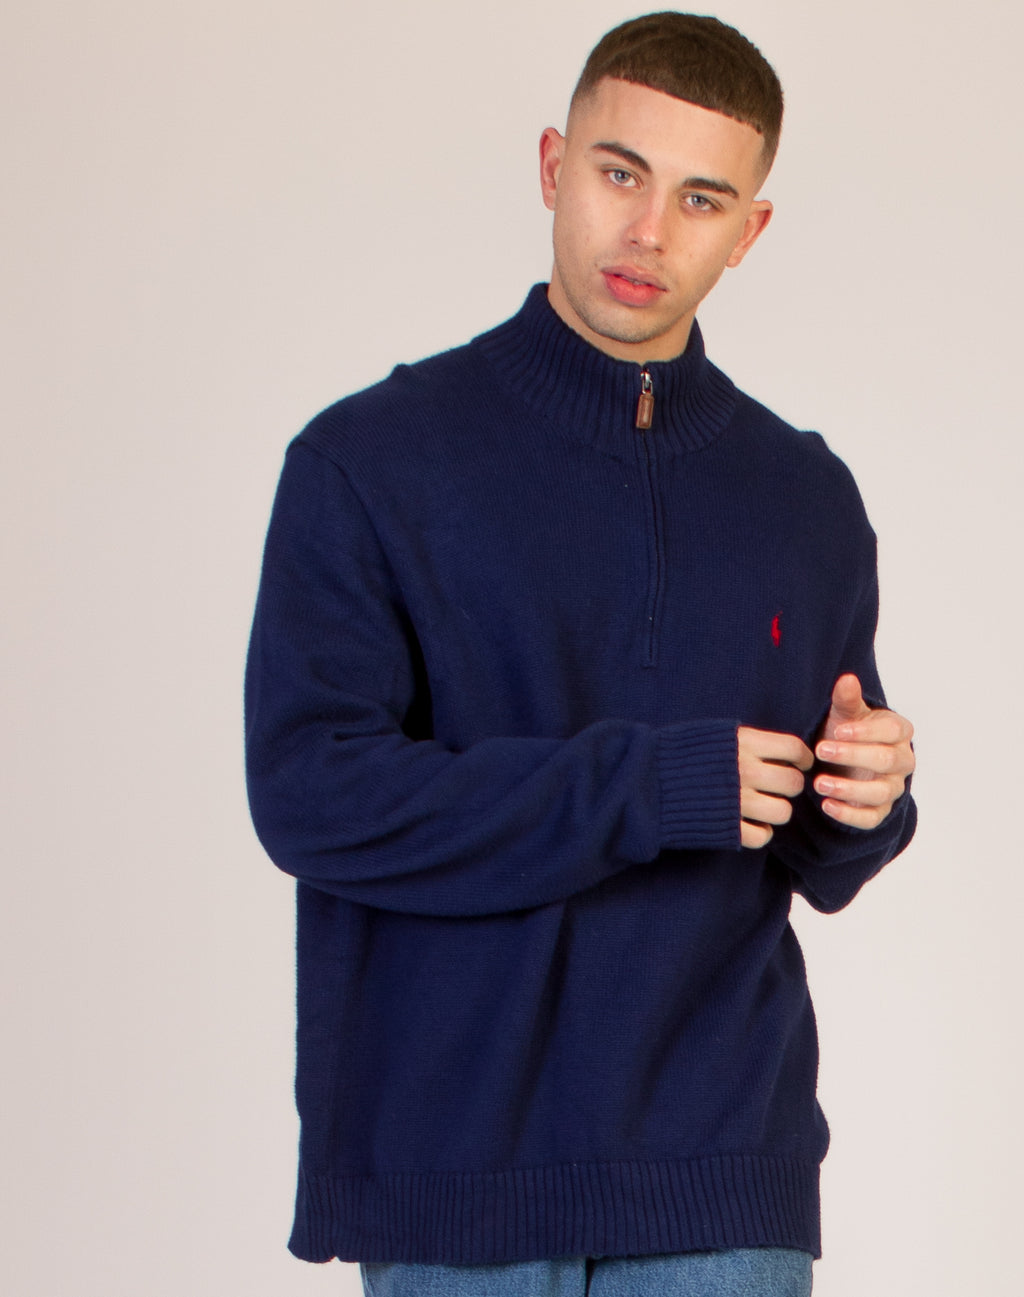 RALPH LAUREN BLUE KNITTED JUMPER